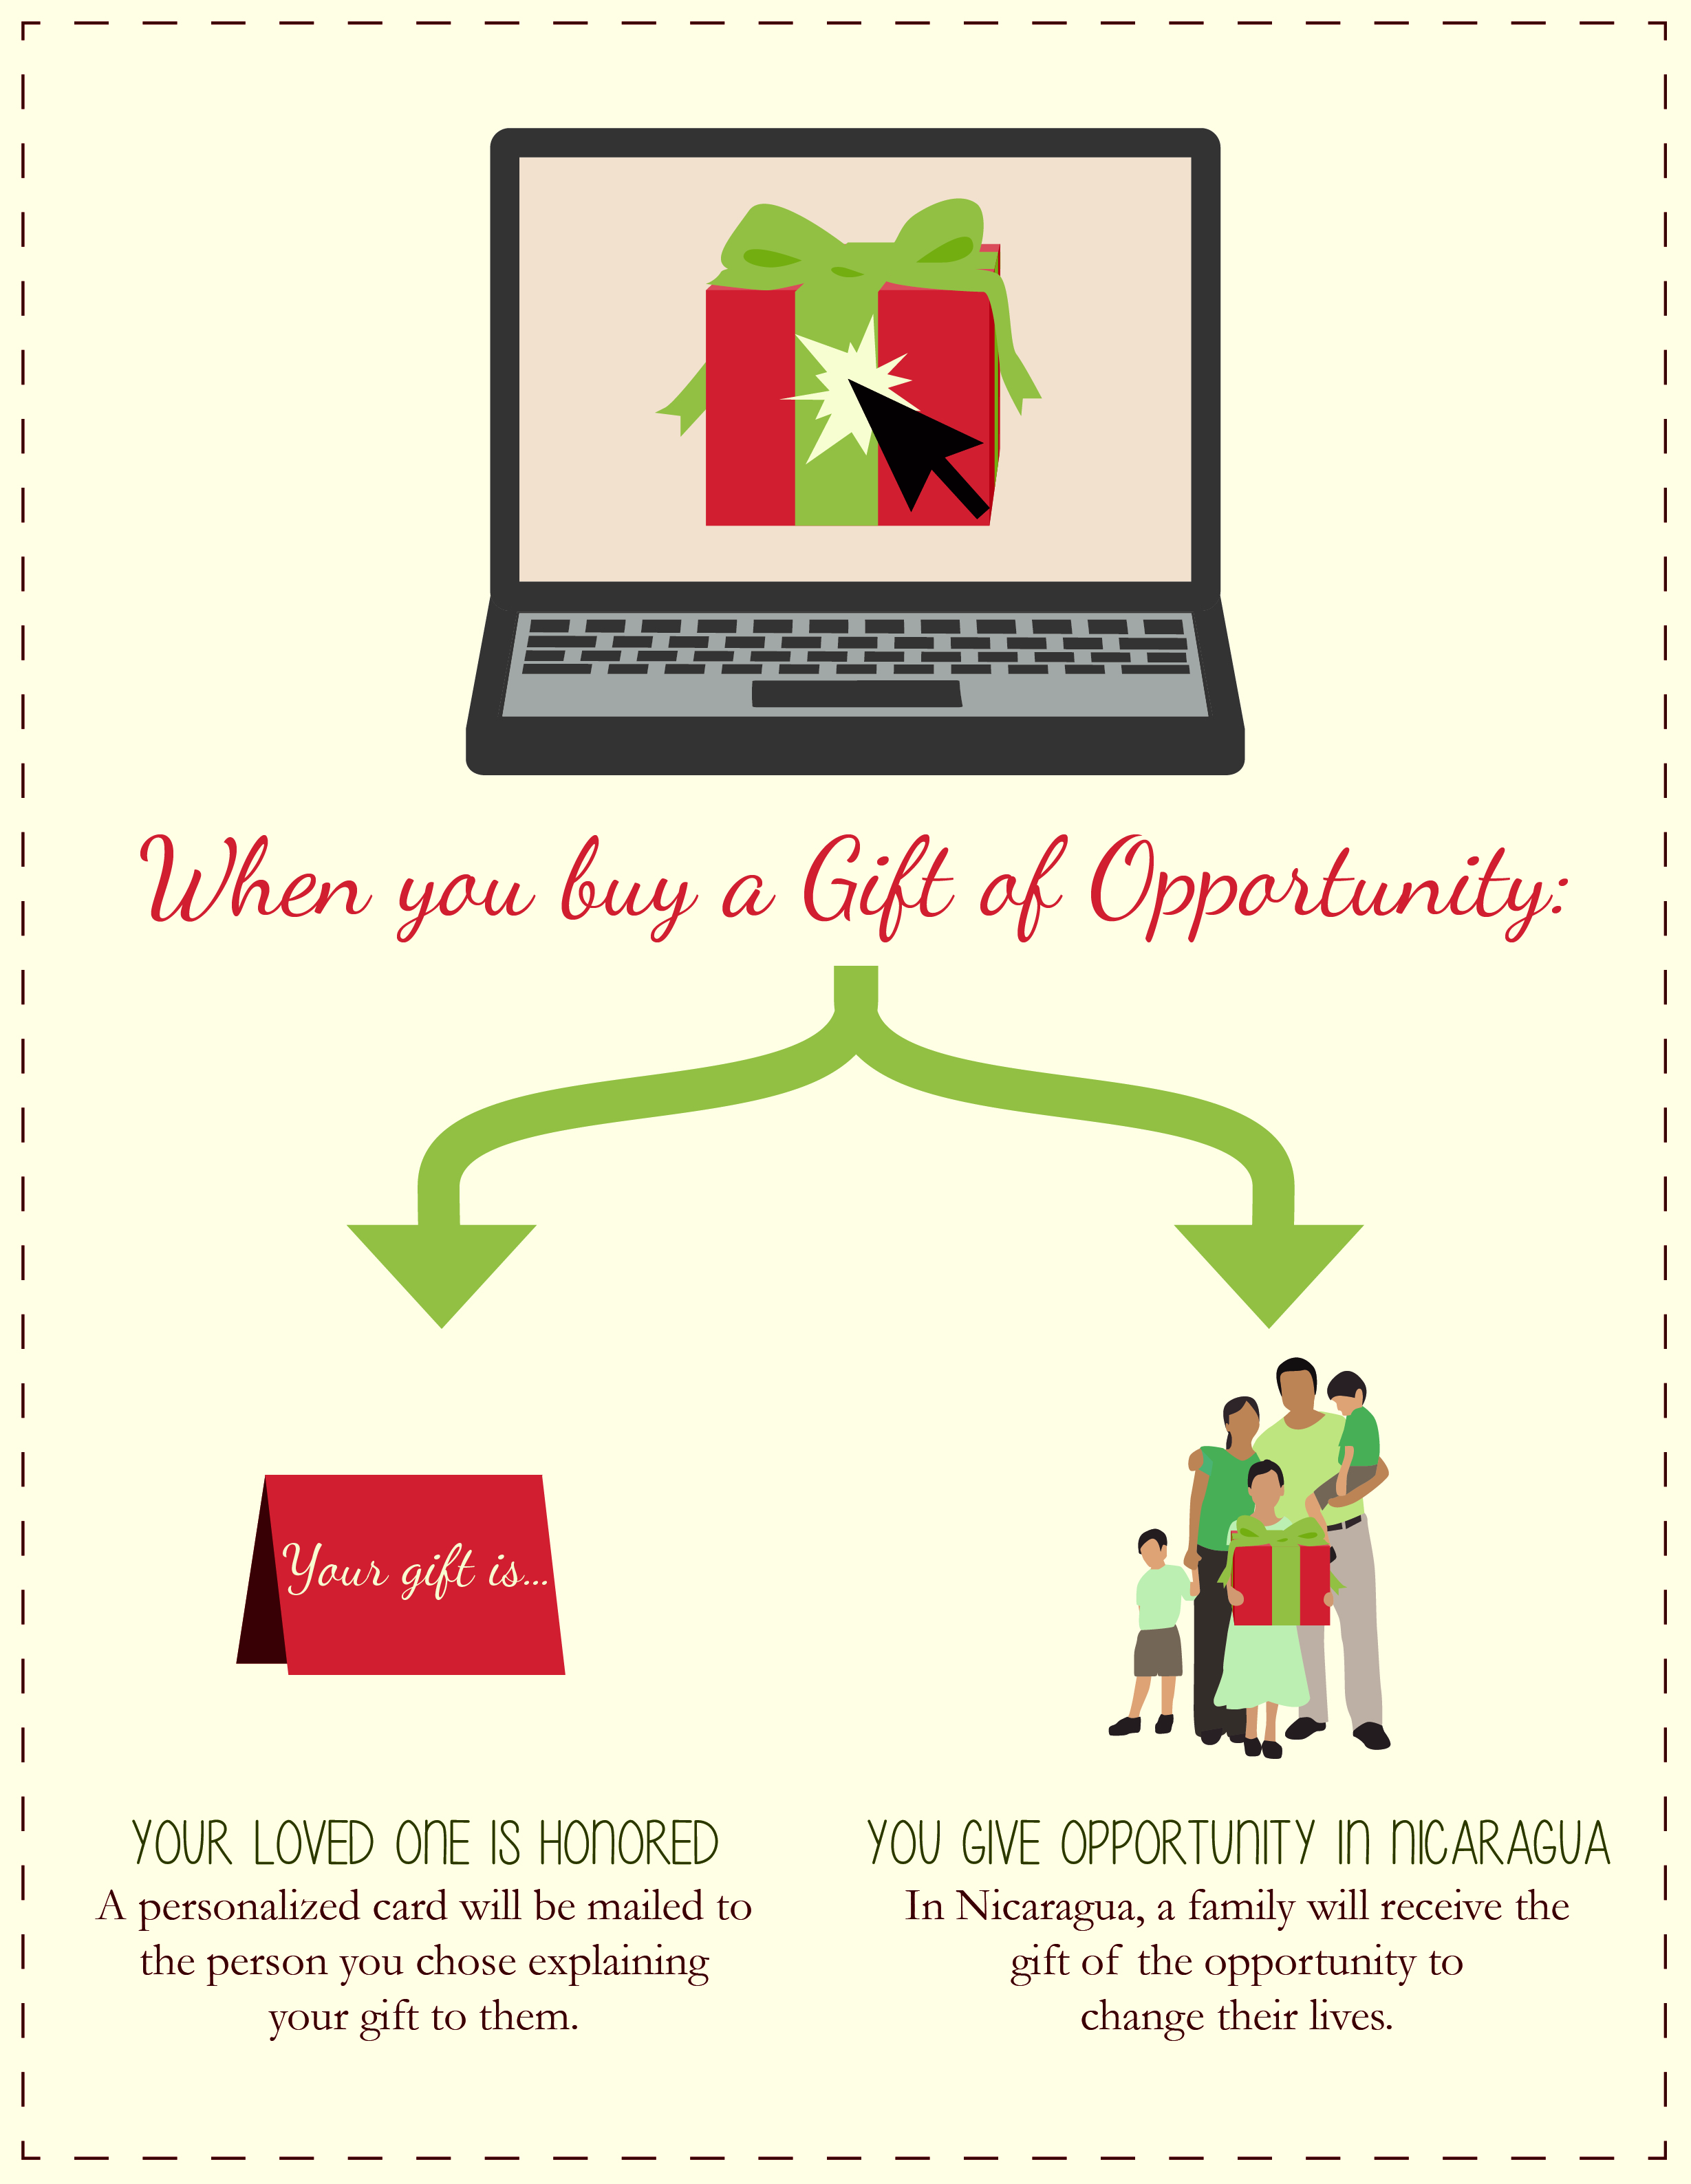 Gift of Opportunity